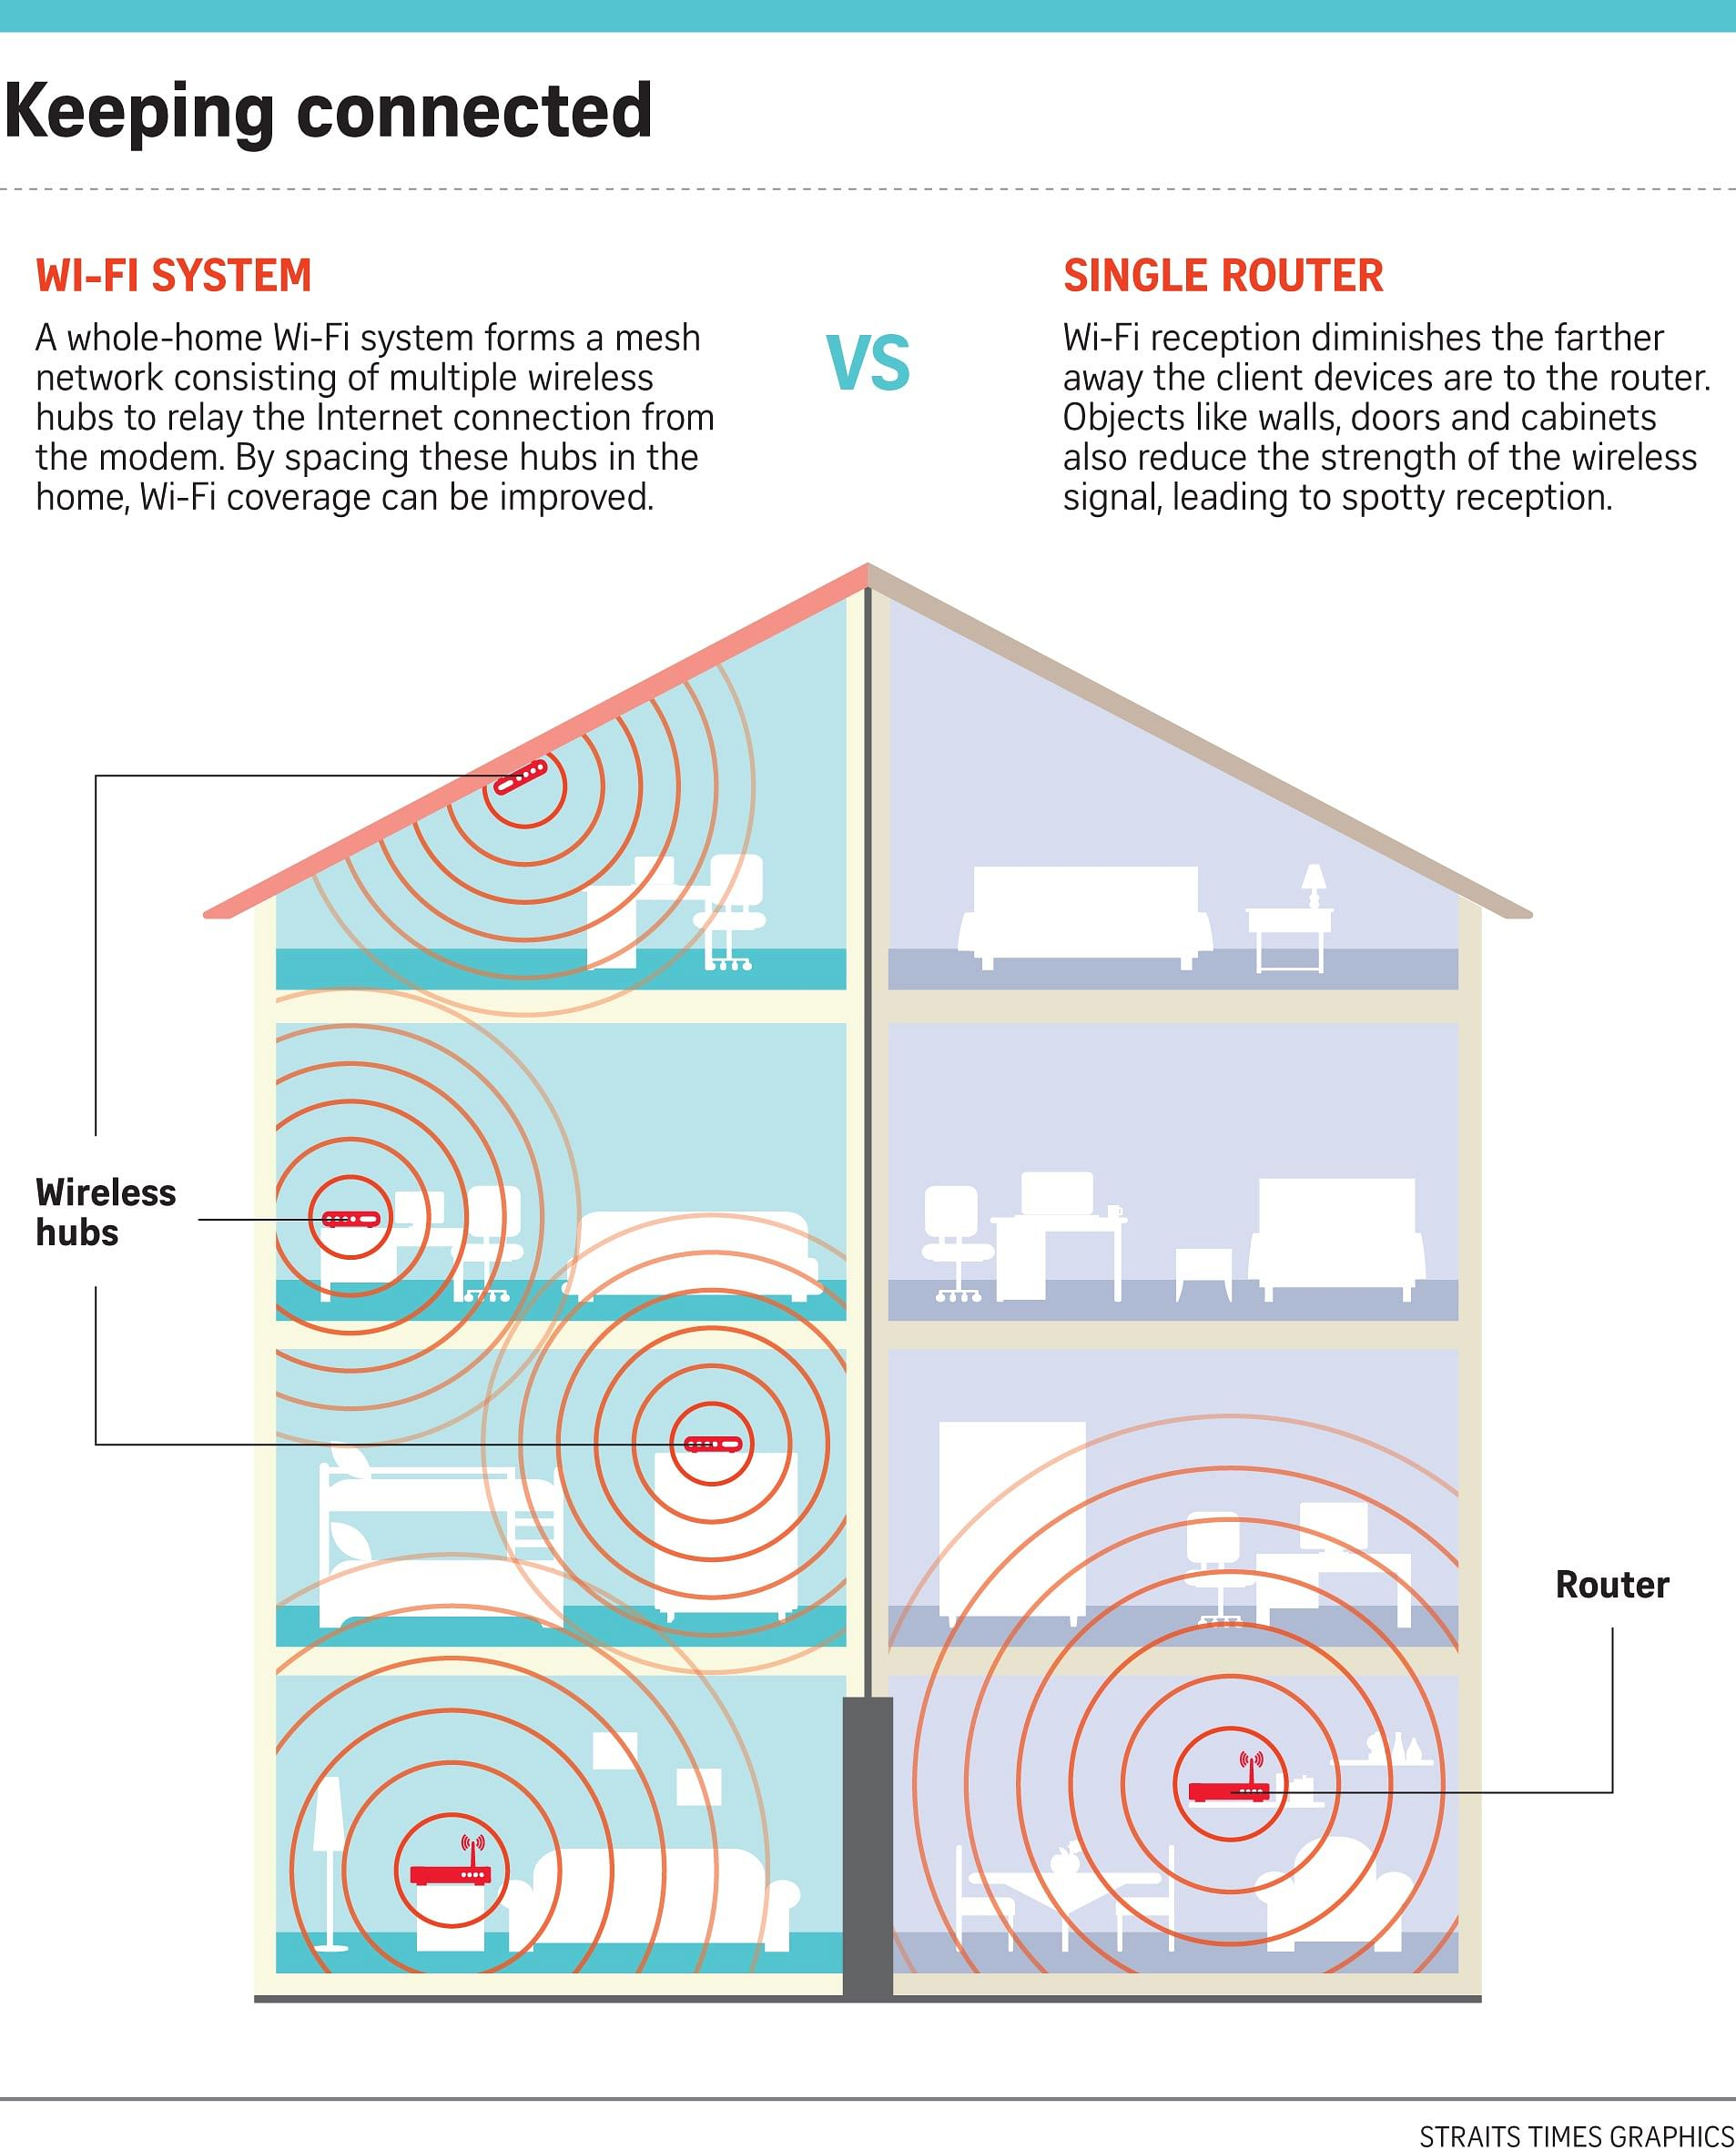 ... recently switched to the Velop Wi-Fi system after experiencing spotty  connectivity despite using three routers in his four-storey home.